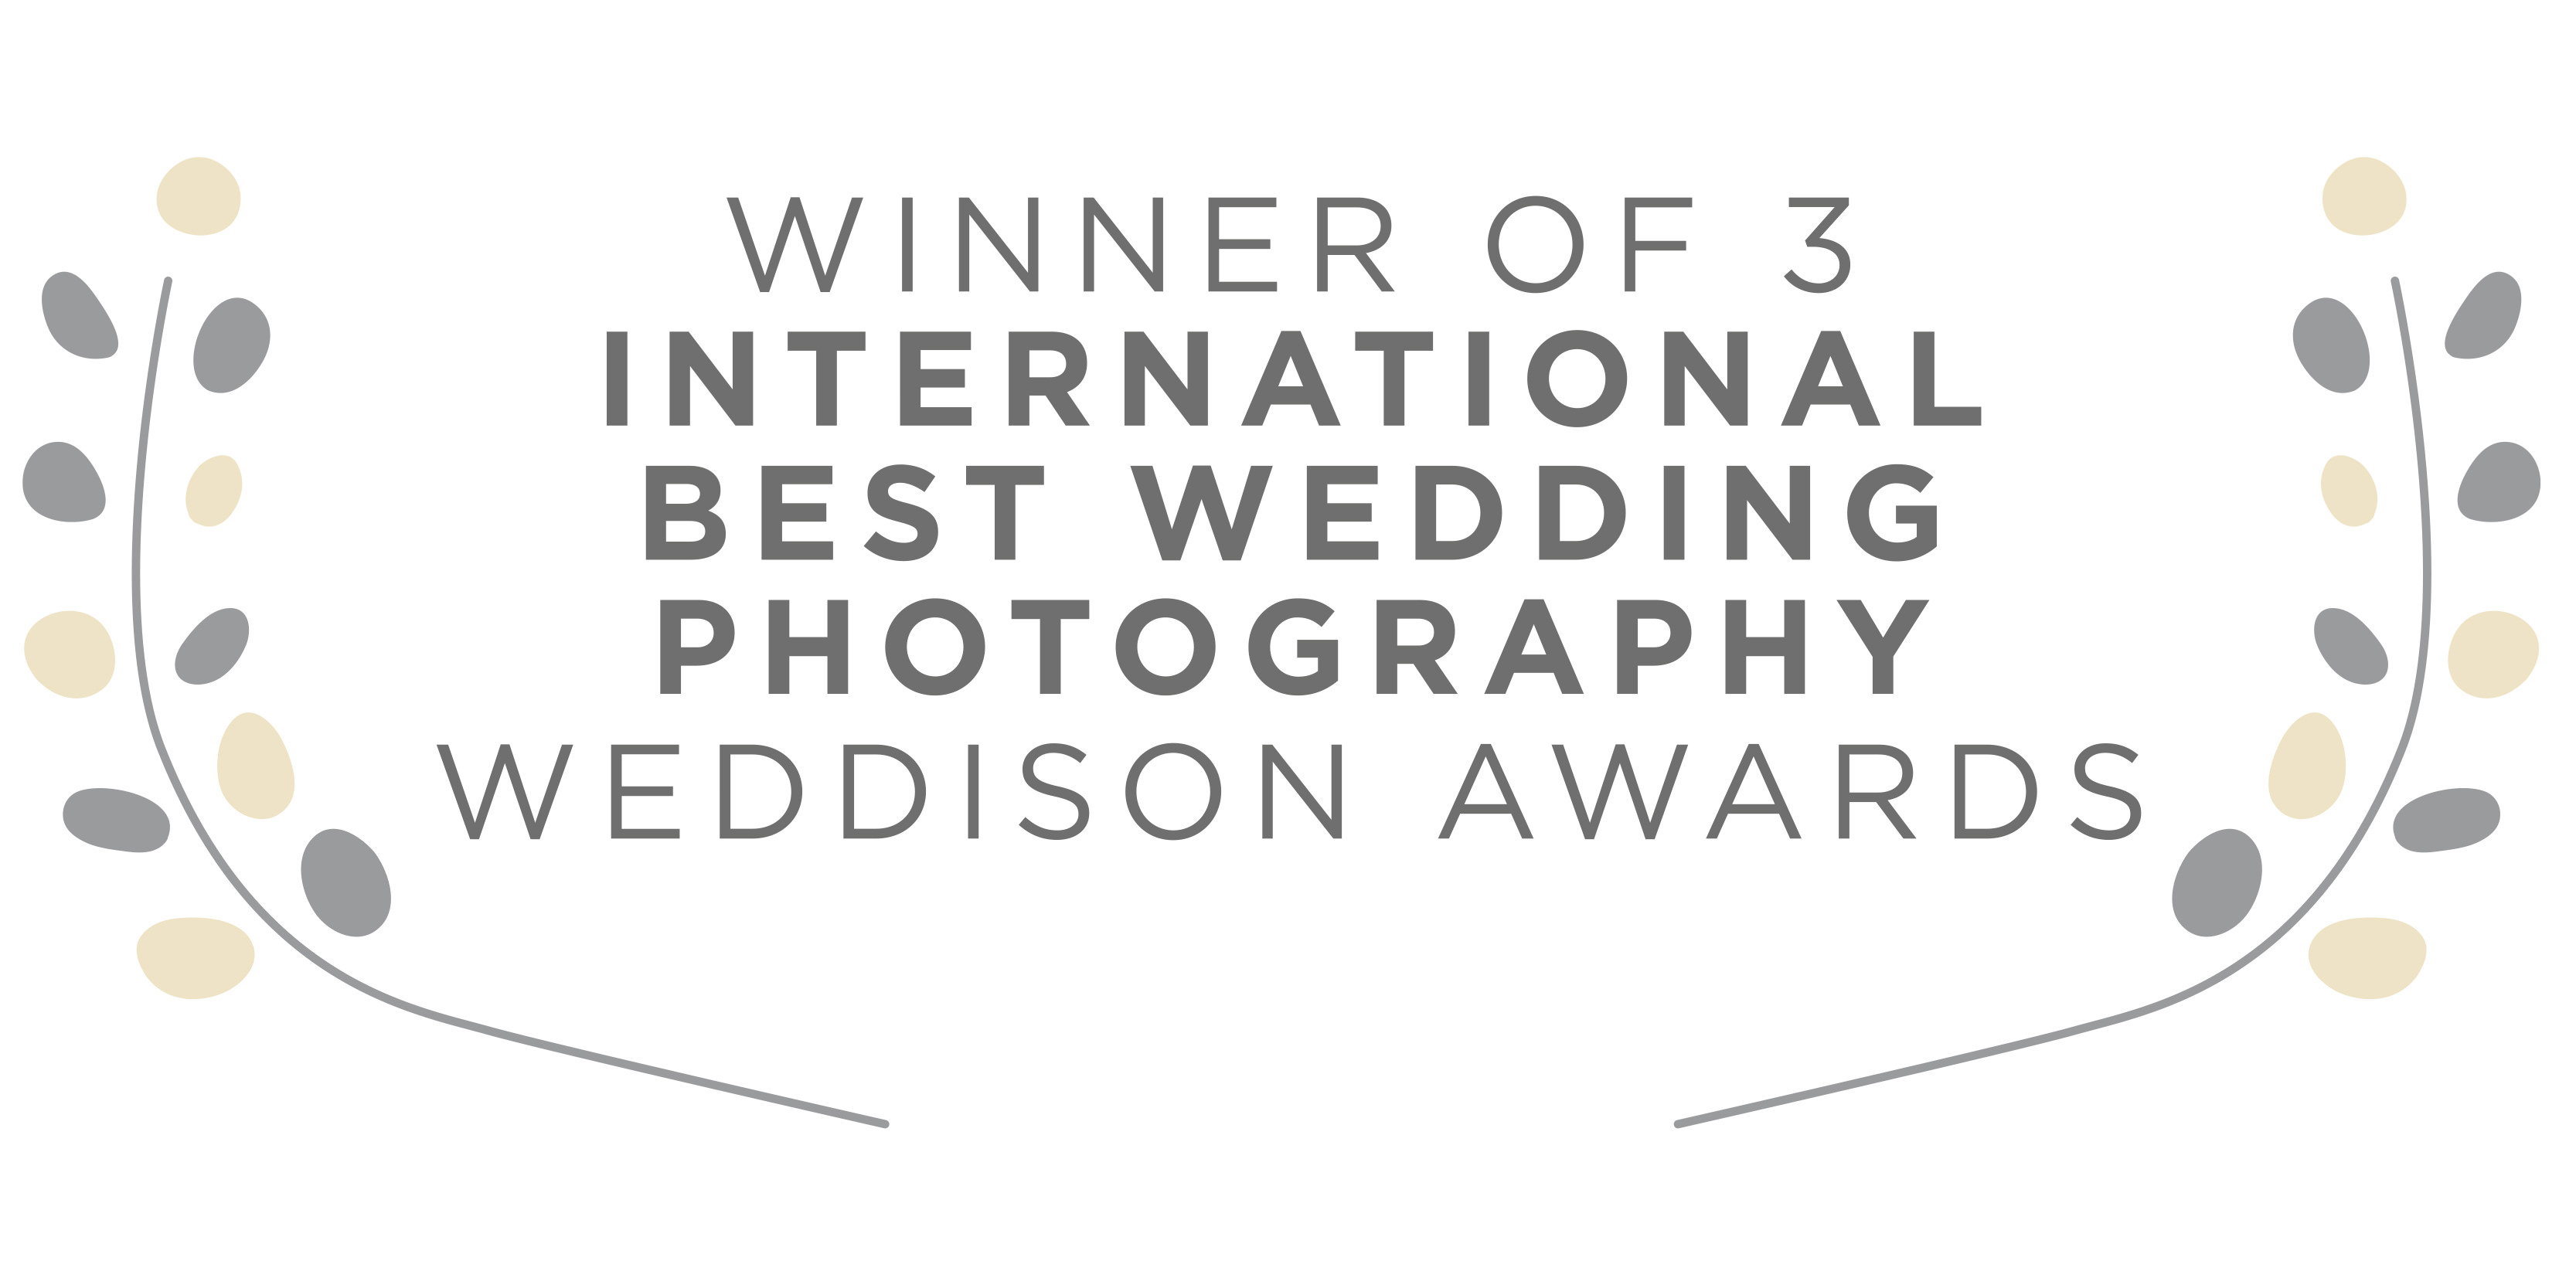 Weddison Award Winning Photographer